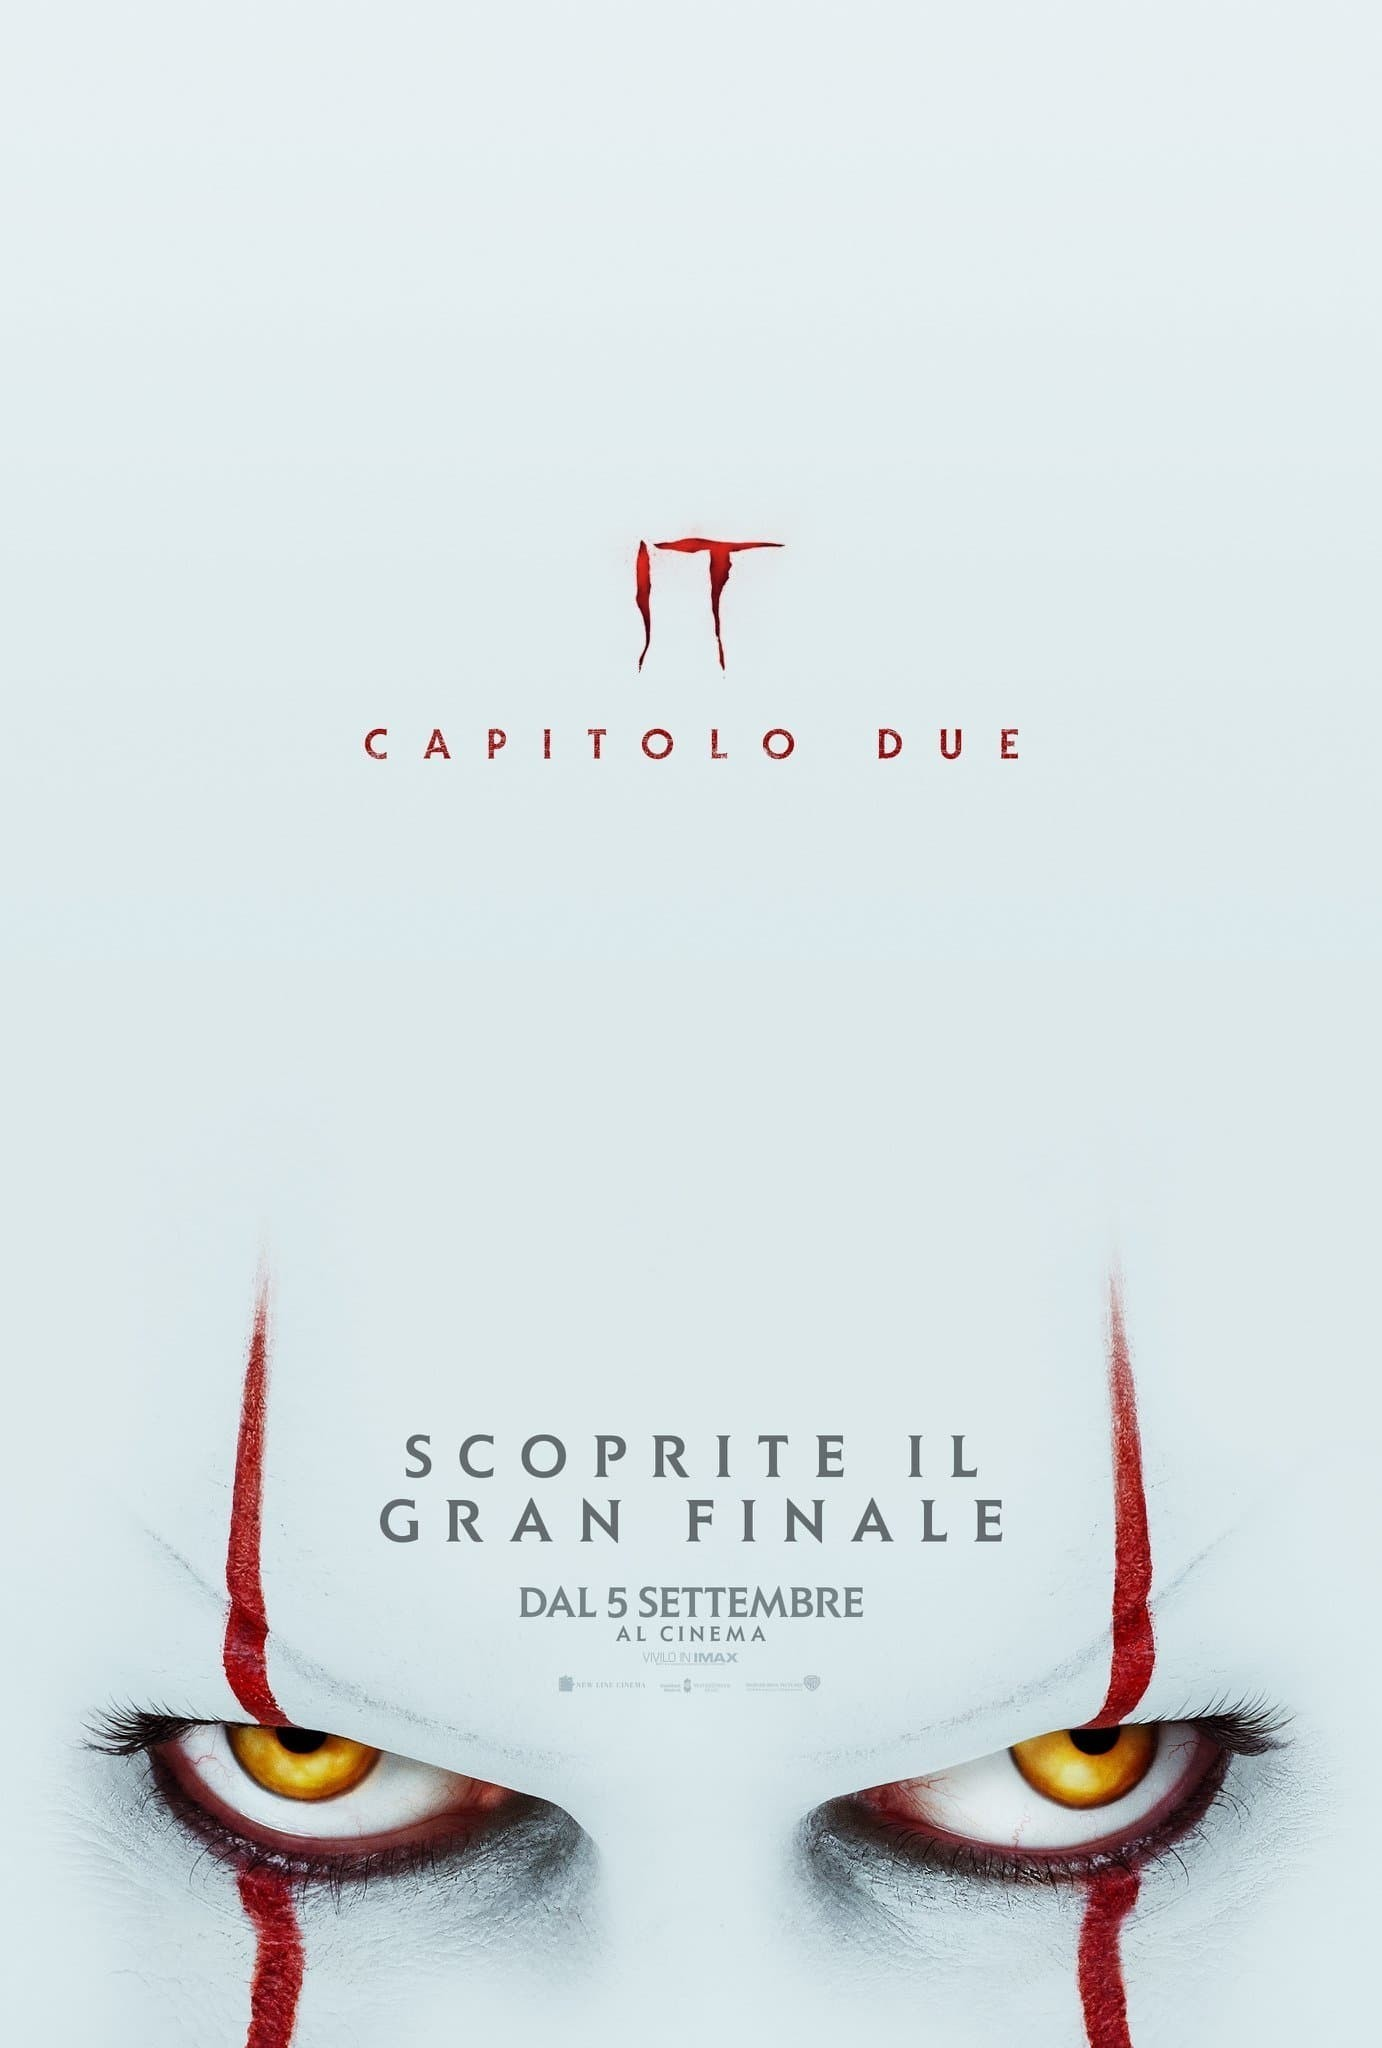 V.m.14 it - capitolo due (it chapter two)